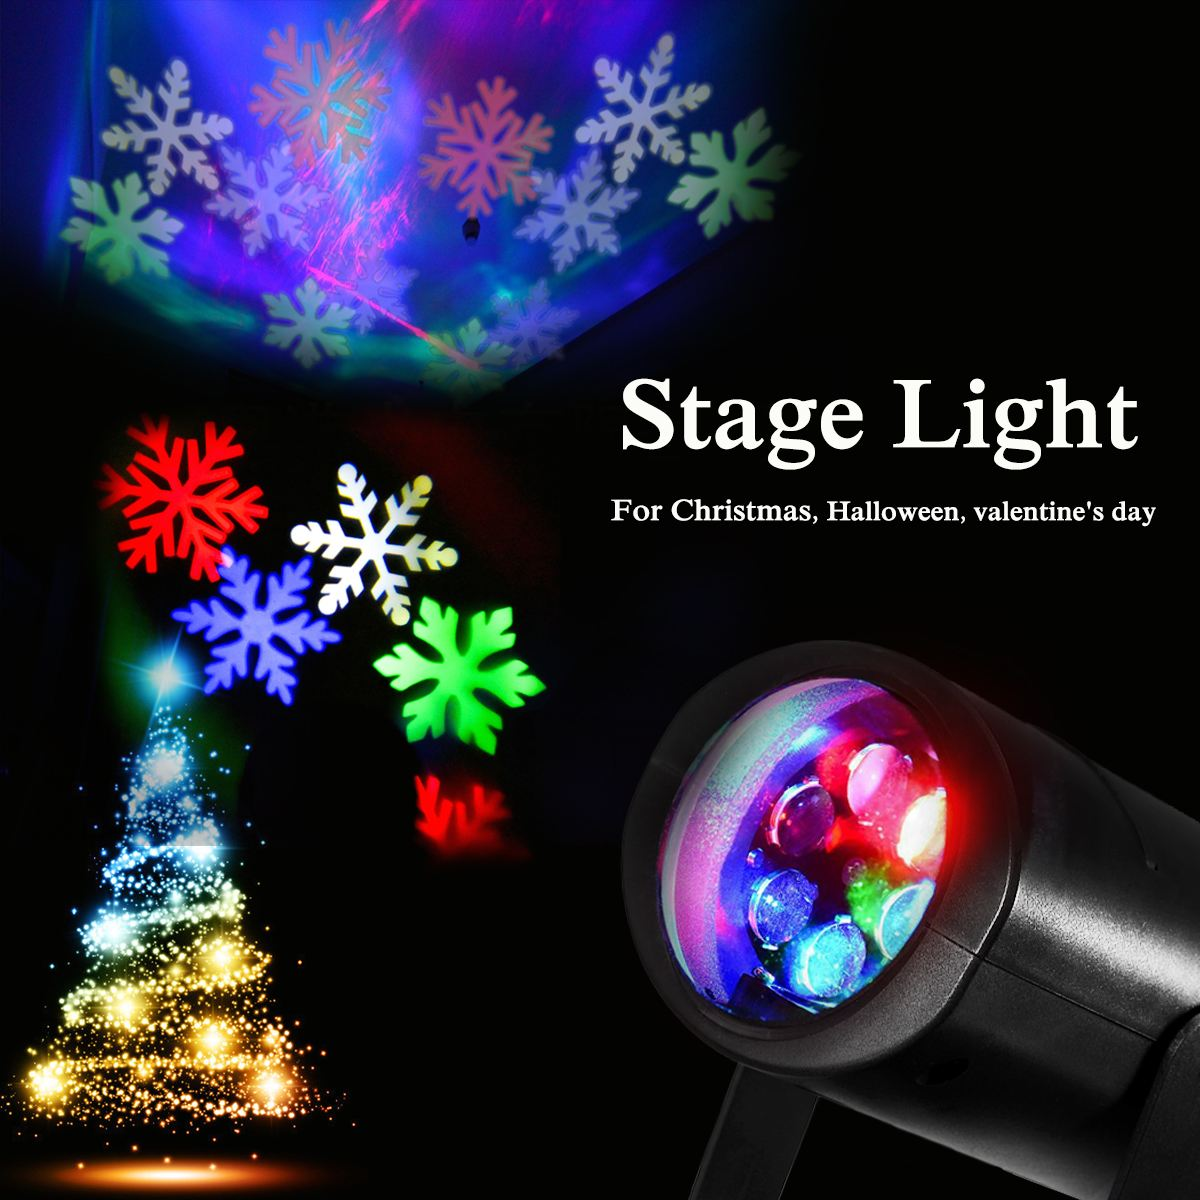 RGB LED Laser Projector Lamps Stage Light Heart Snow Spider Bowknot Pattern Halloween Christmas Party Garden Indoor Lighting 96 pattern 9w black led rgb projector